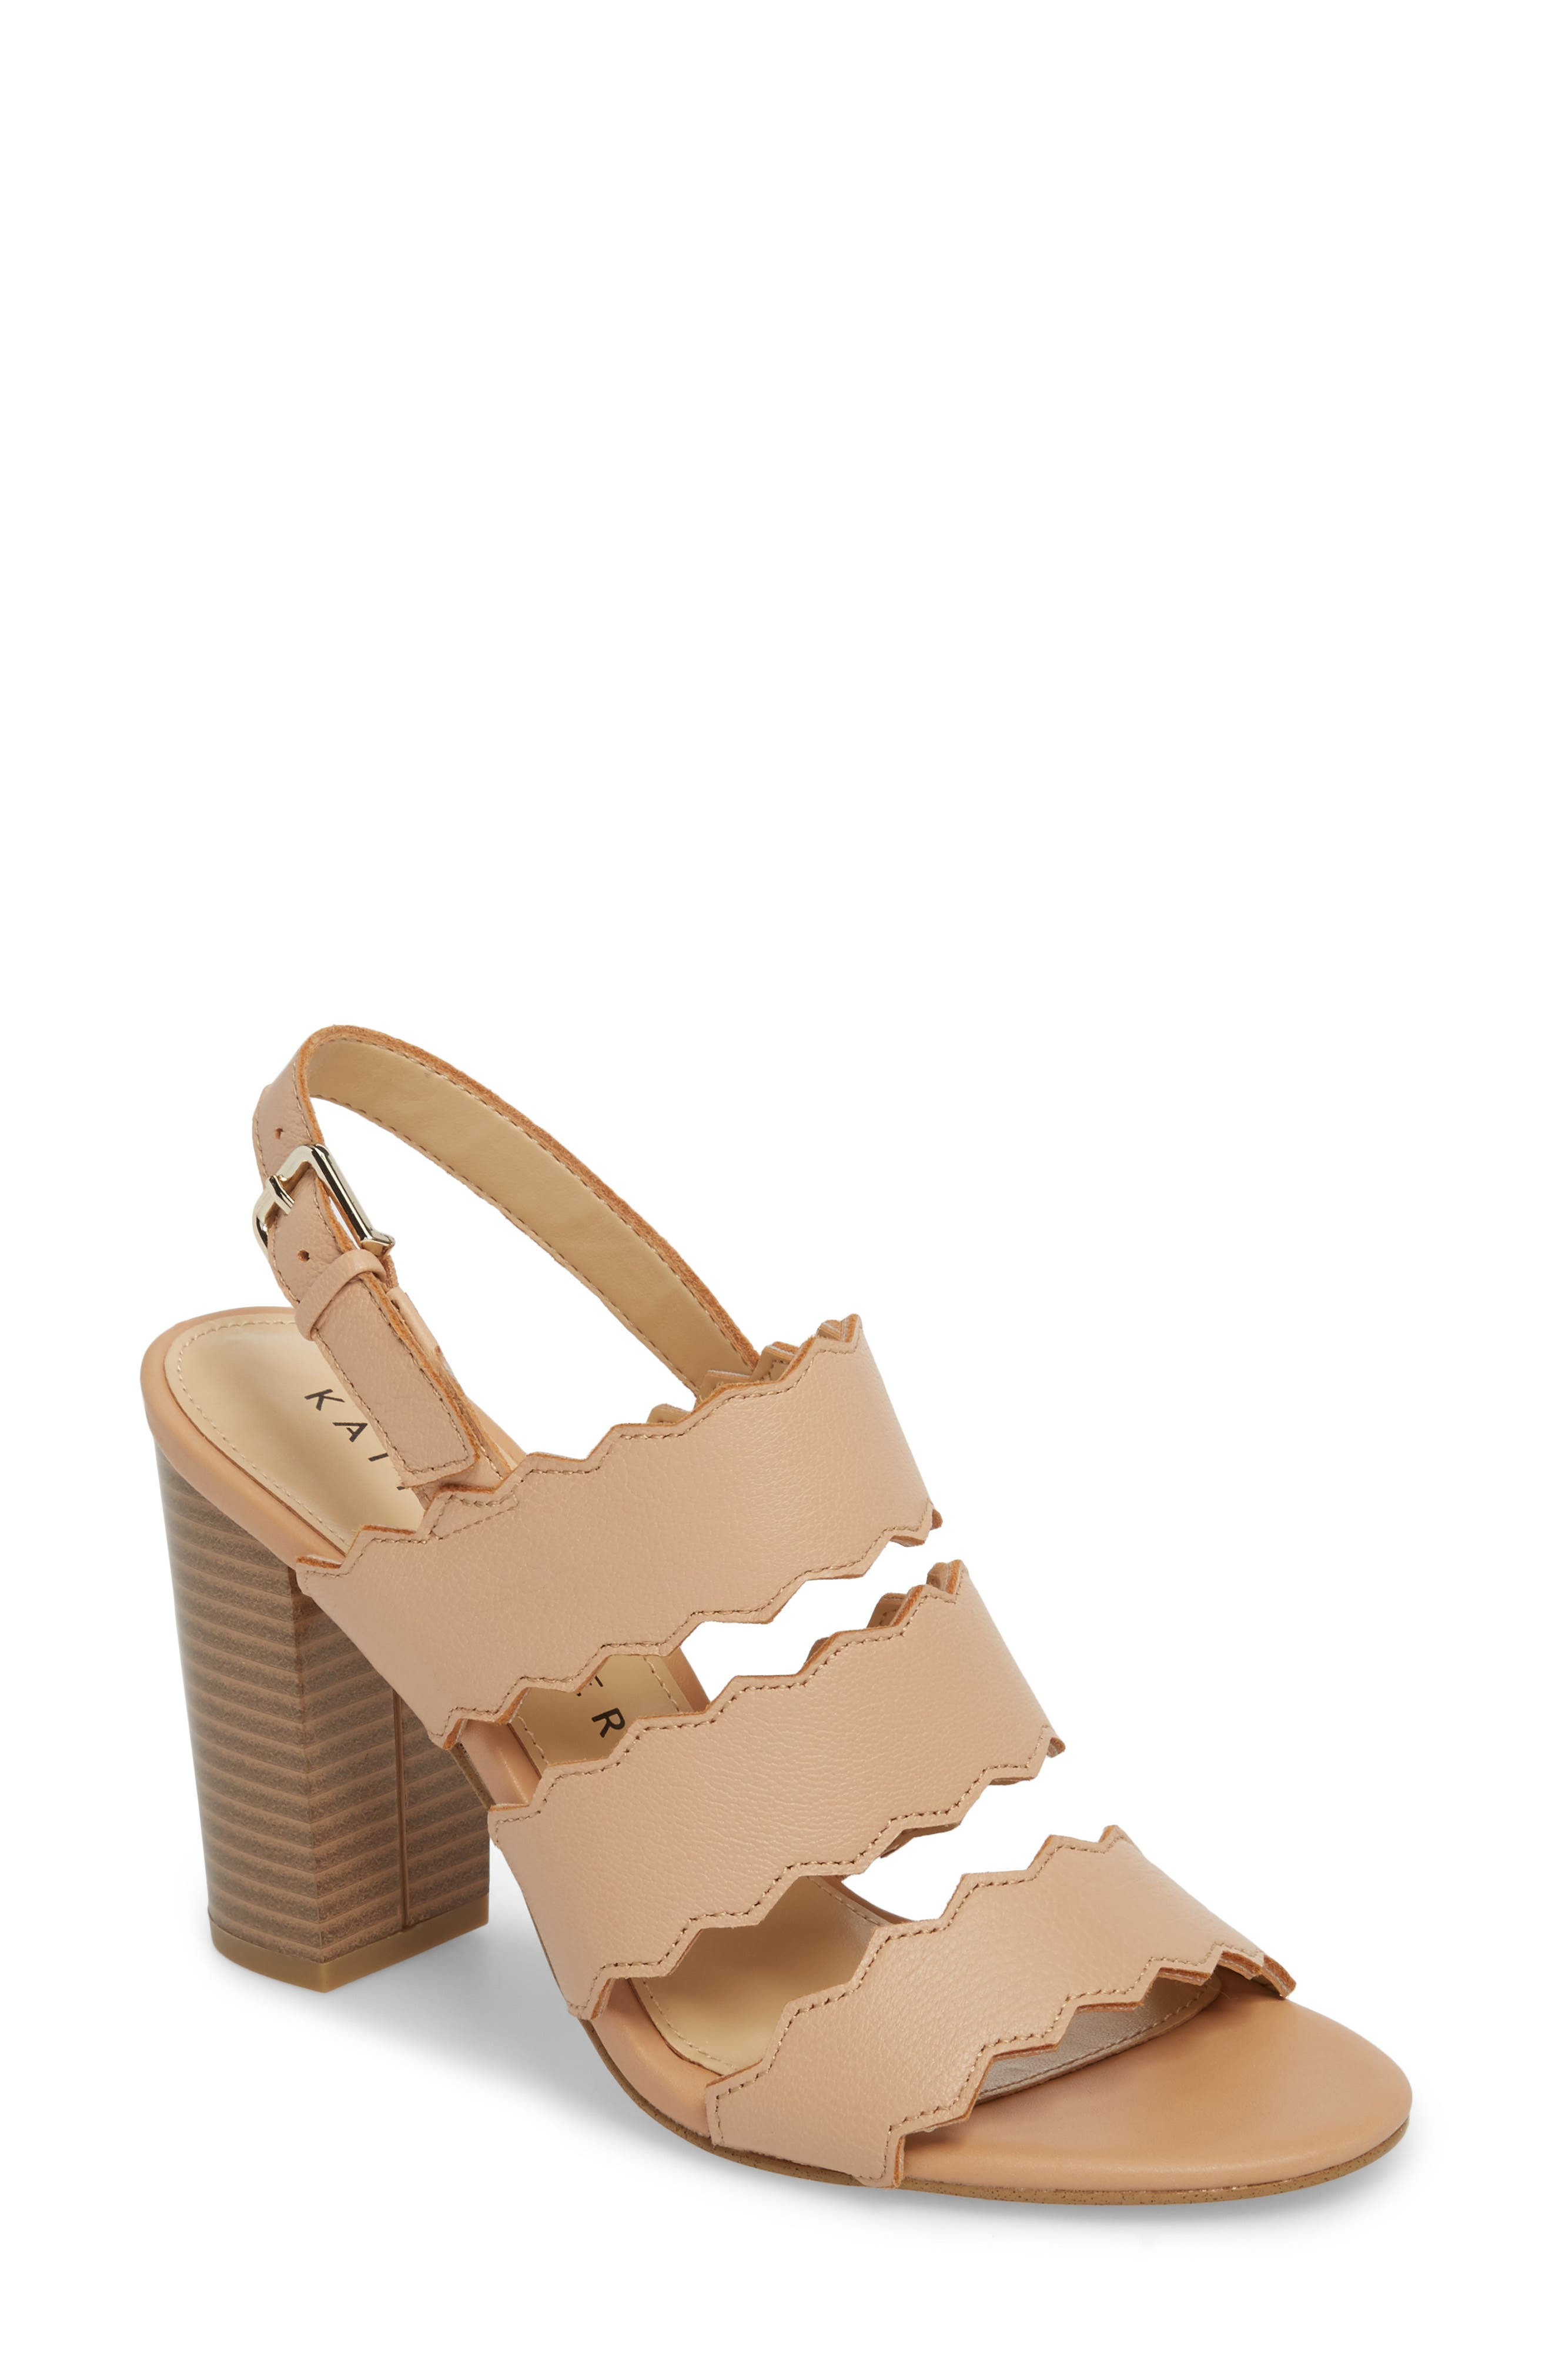 Katy Perry Open Toe Sandal (Women)